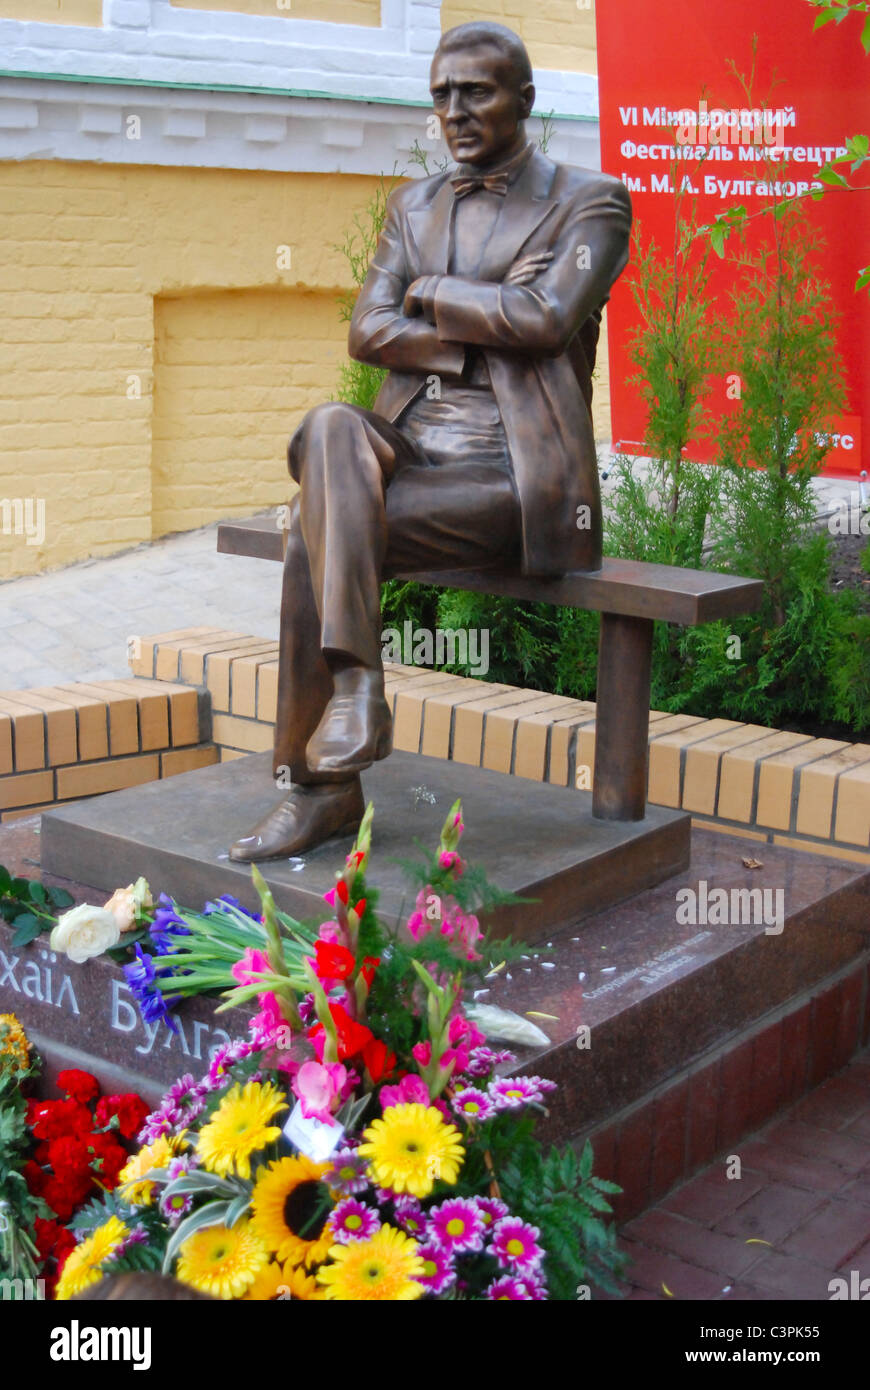 Mikhail Bulgakov monument in Kiev, Ukraine - Stock Image